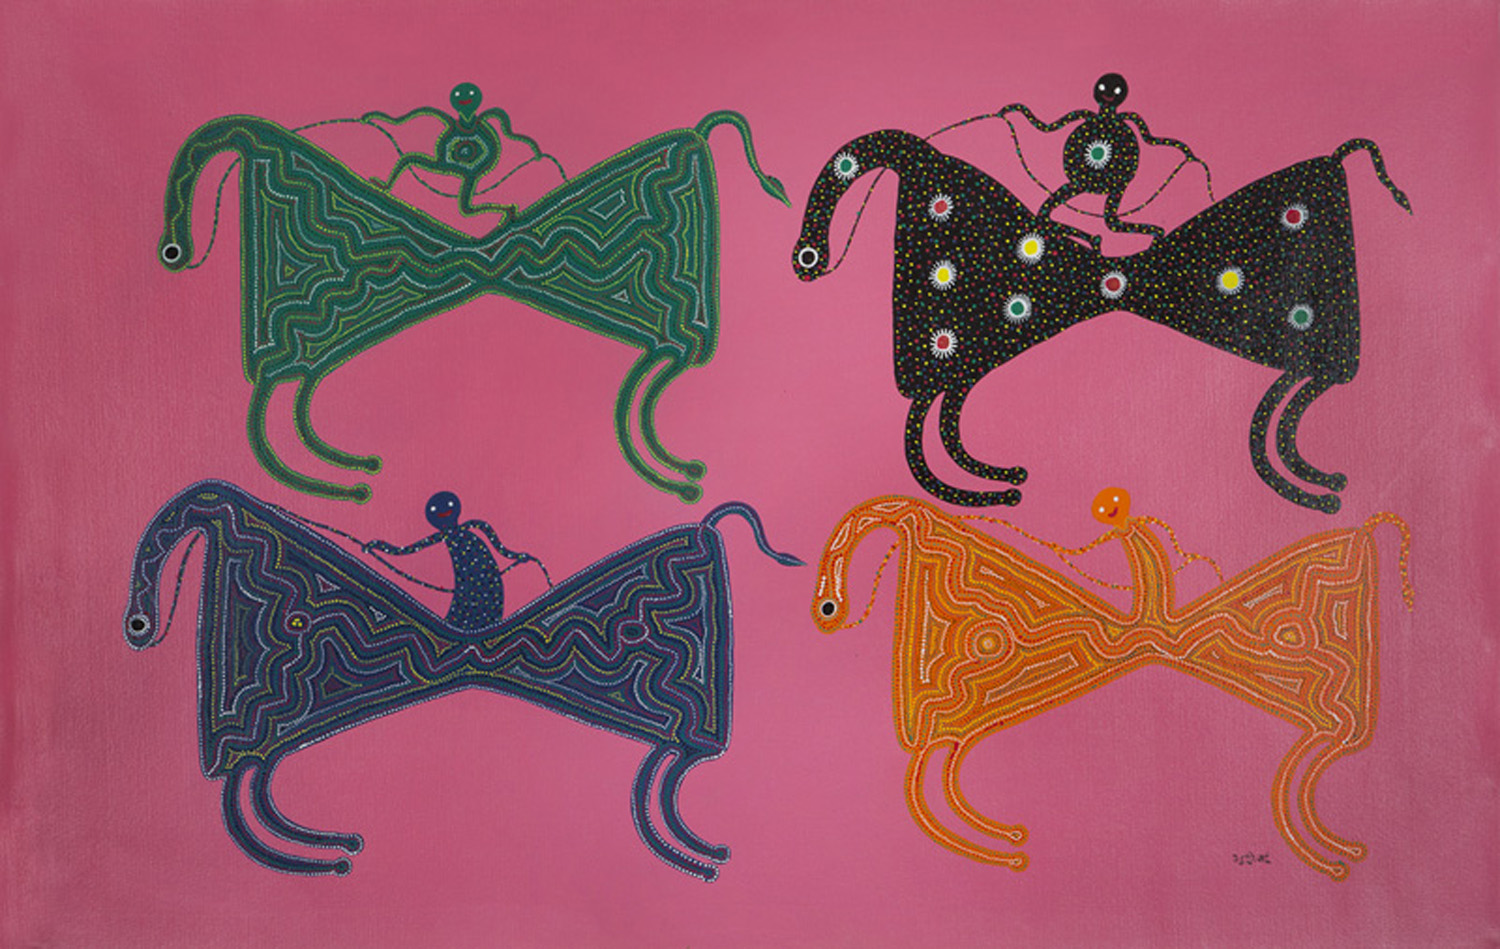 A work by Bhuri Bai, one of the Indian female artists whose work is featured on MAP's website.